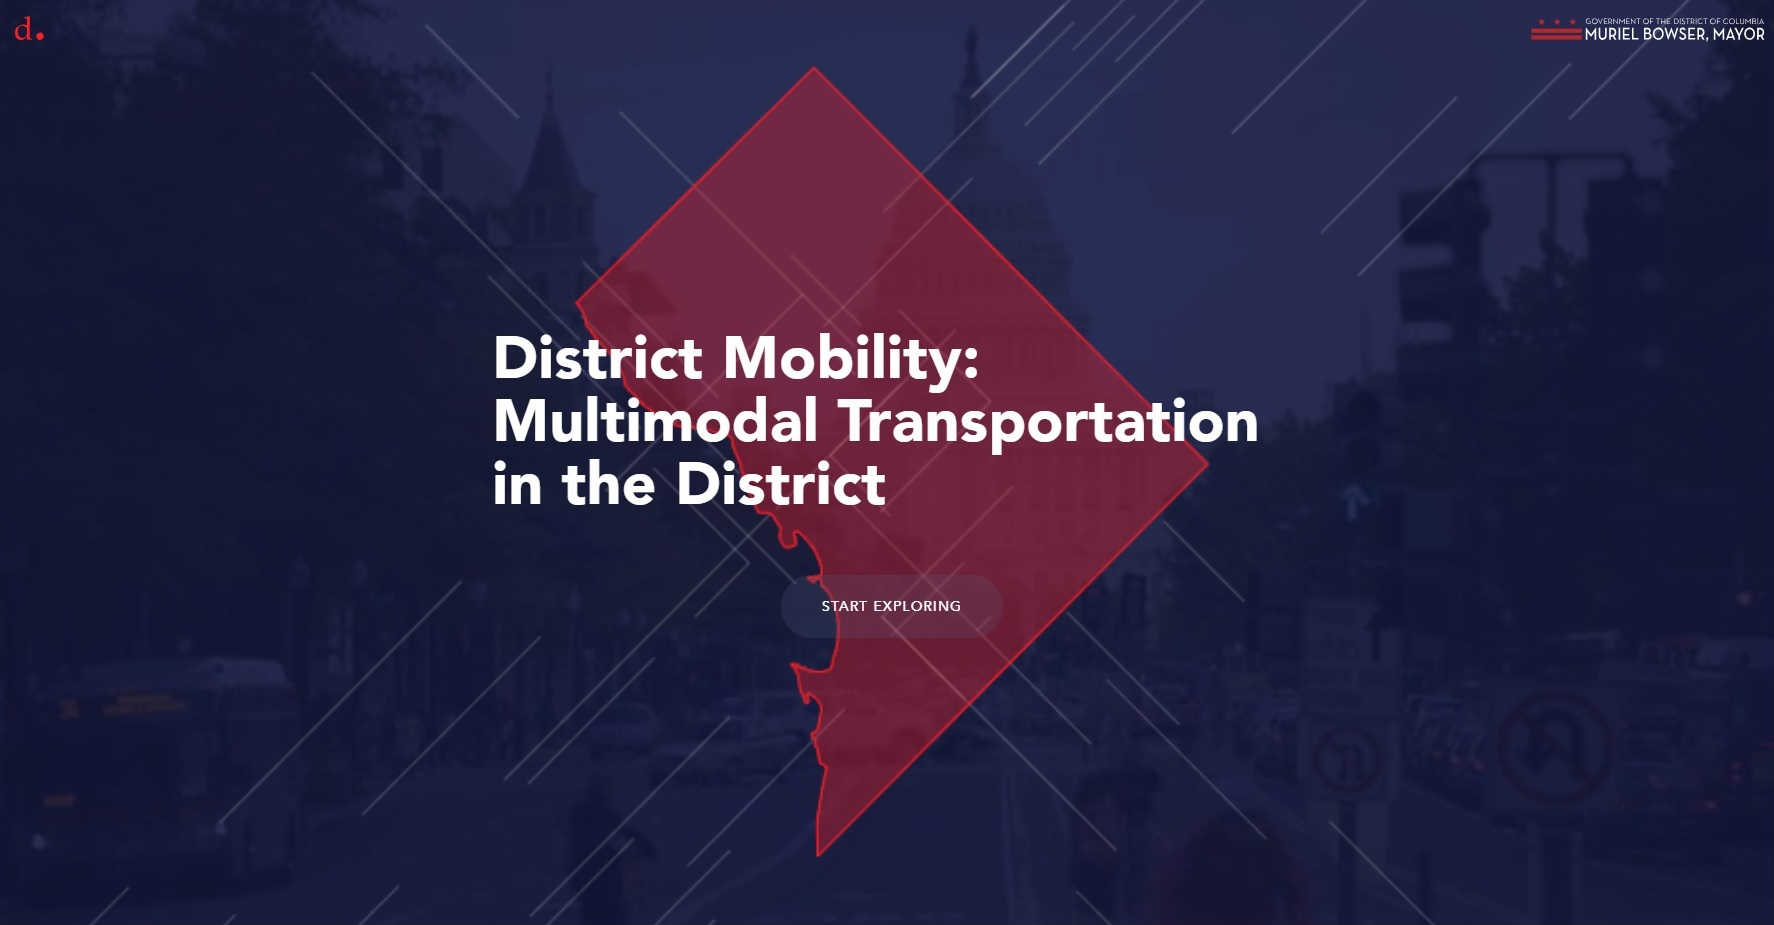 DDOT District Mobility website_screen capture